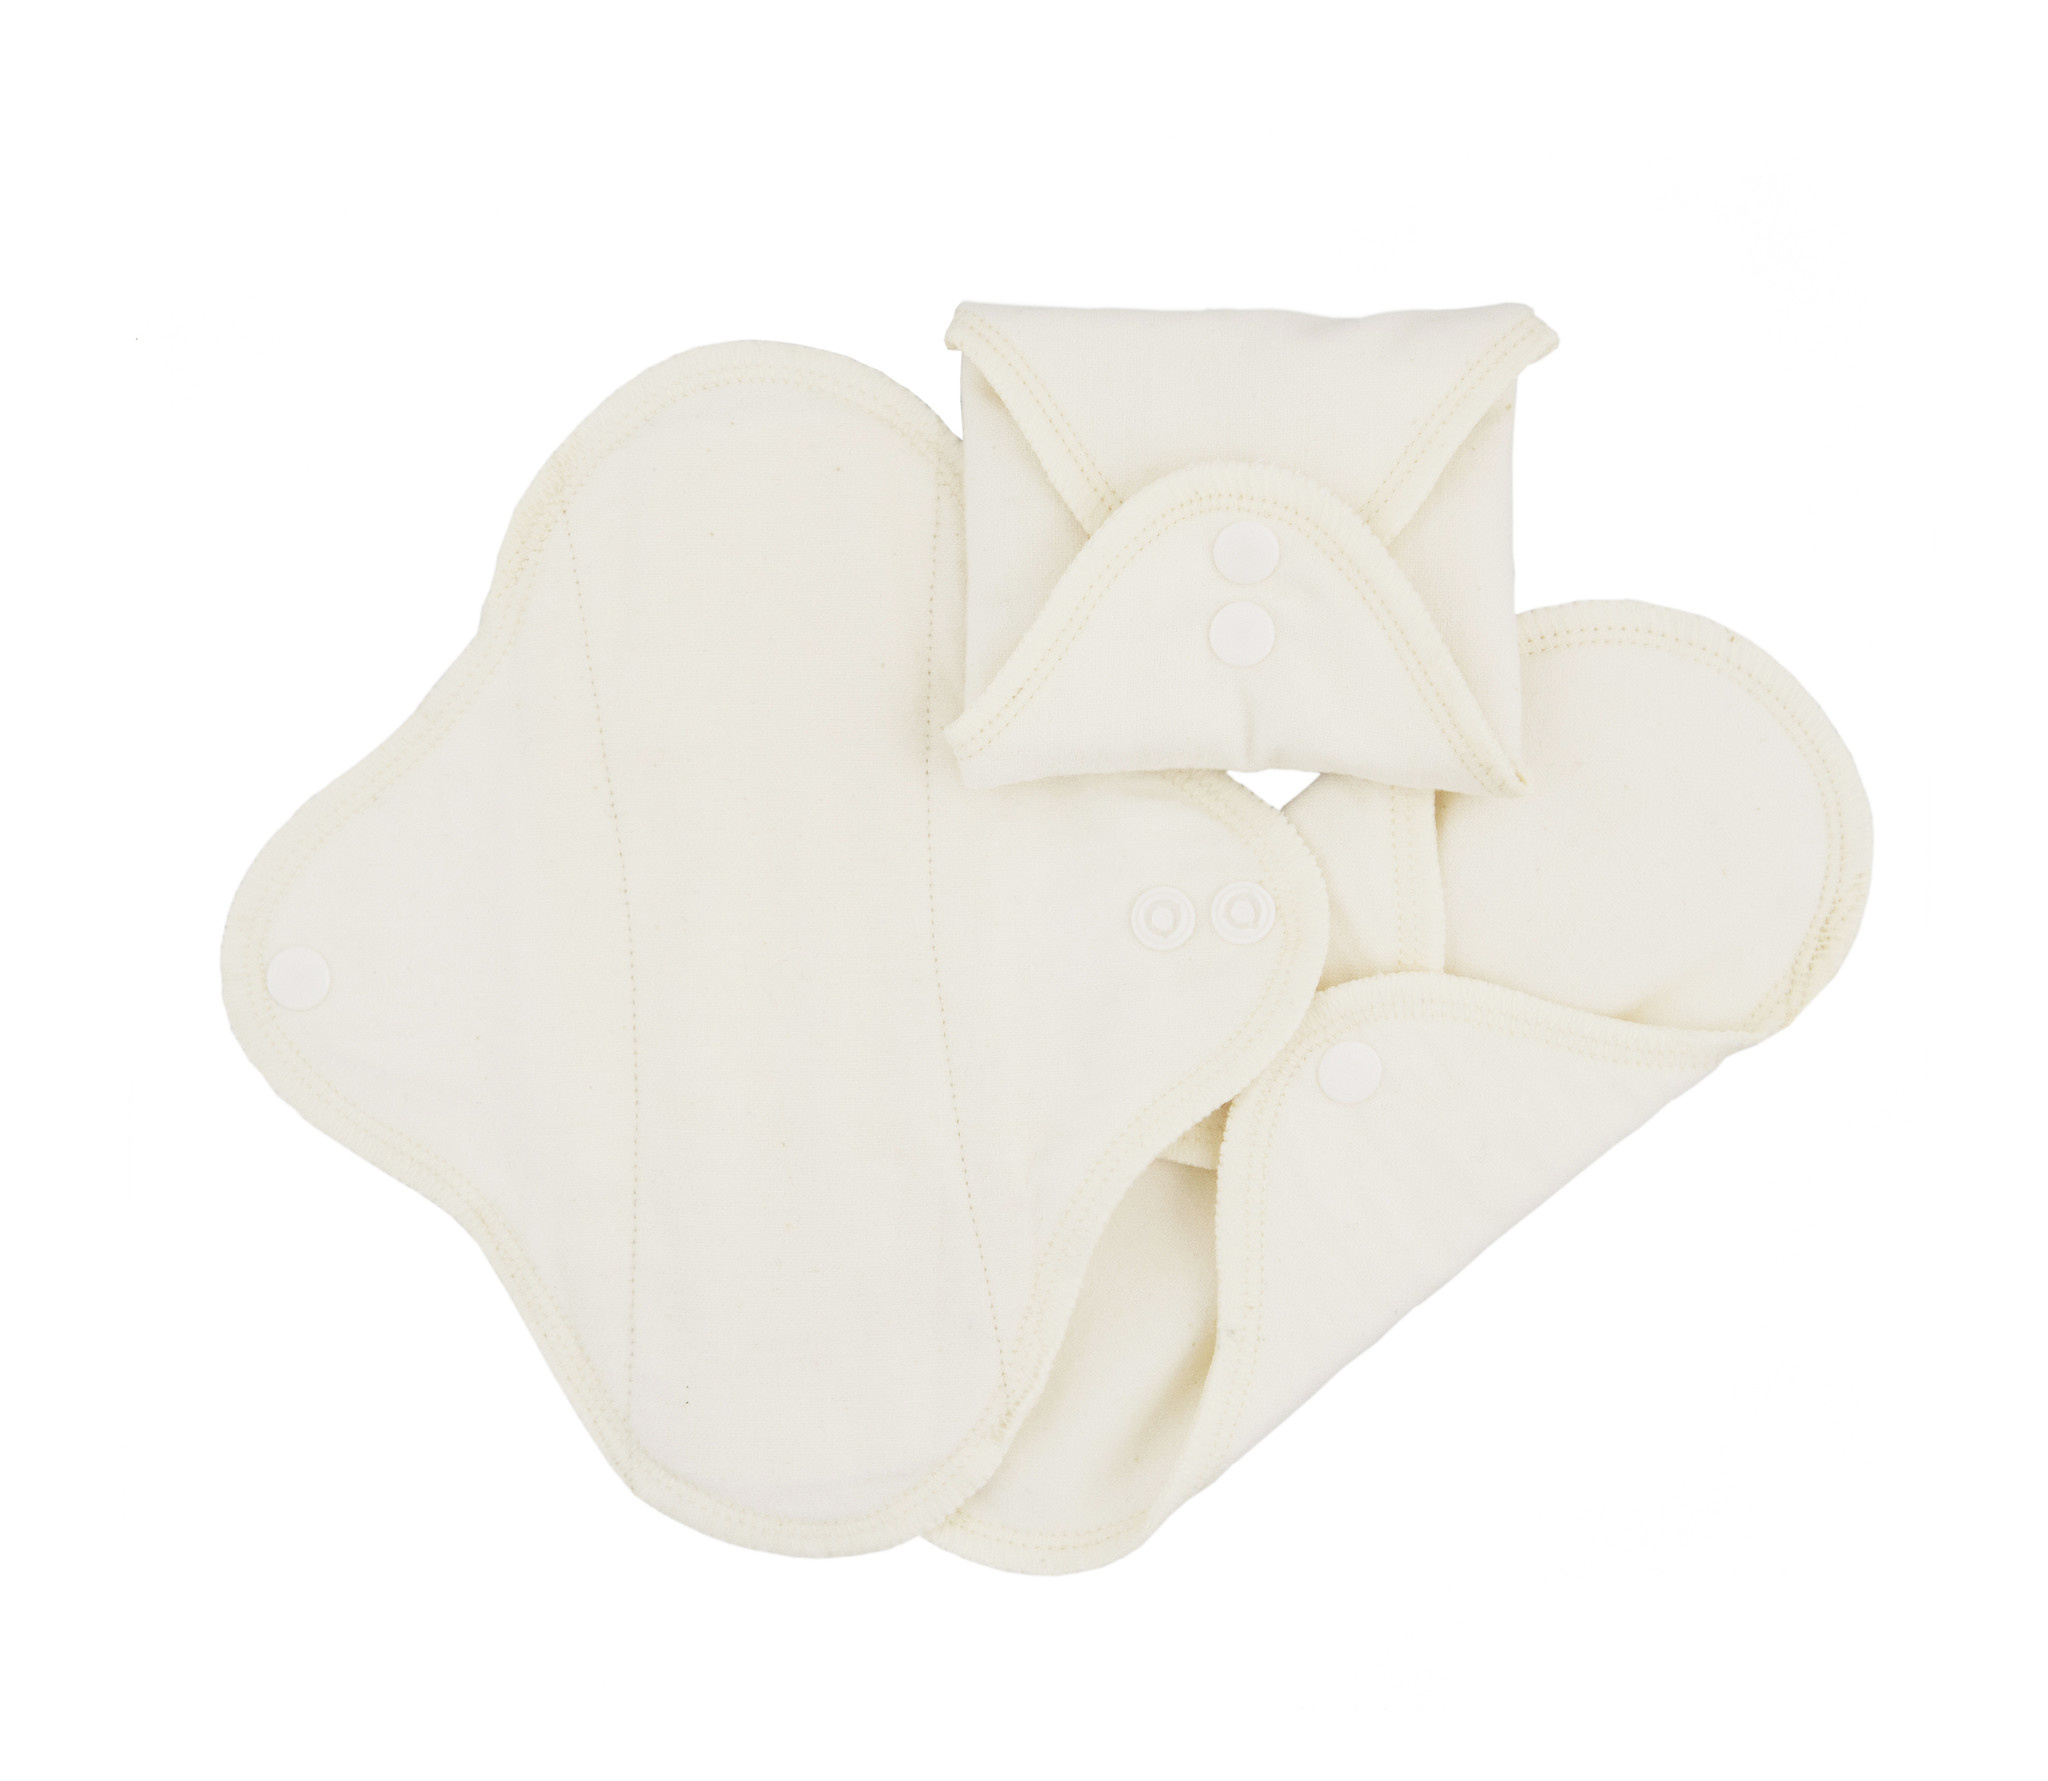 ImseVimse Pack of 3 Washable Panty liners - Natural with colored stitching